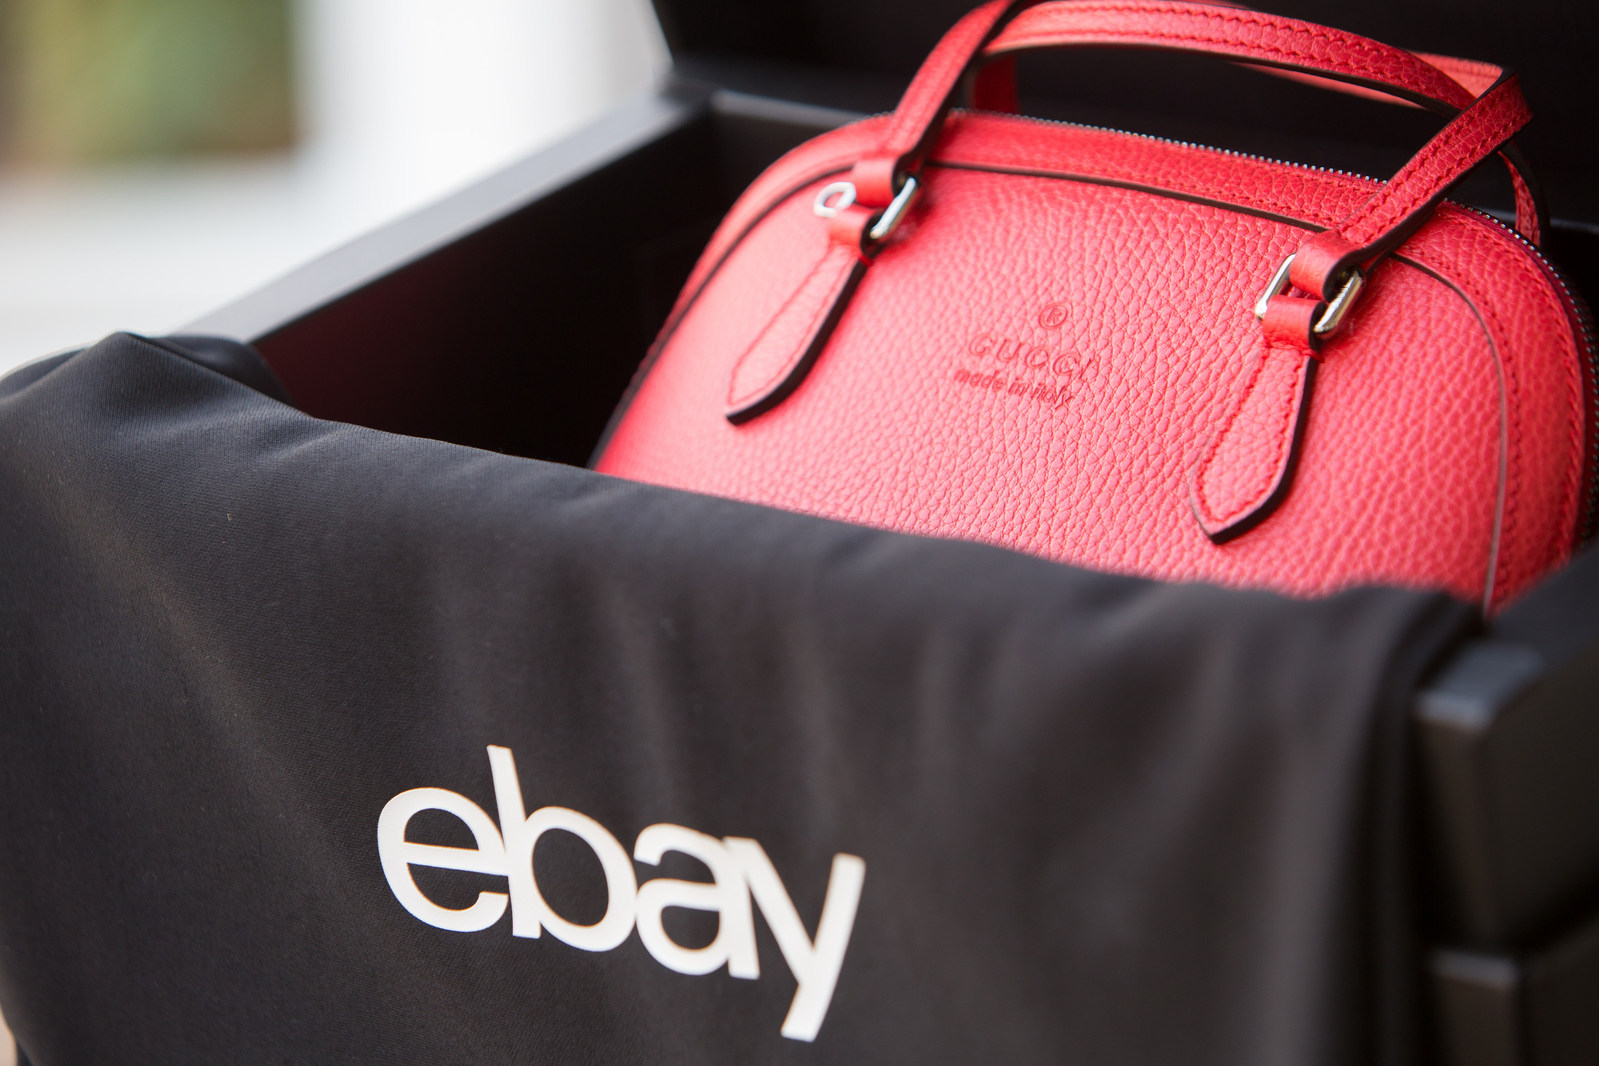 eBay will now verify luxury handbags sold on the site e8408c26e19d8